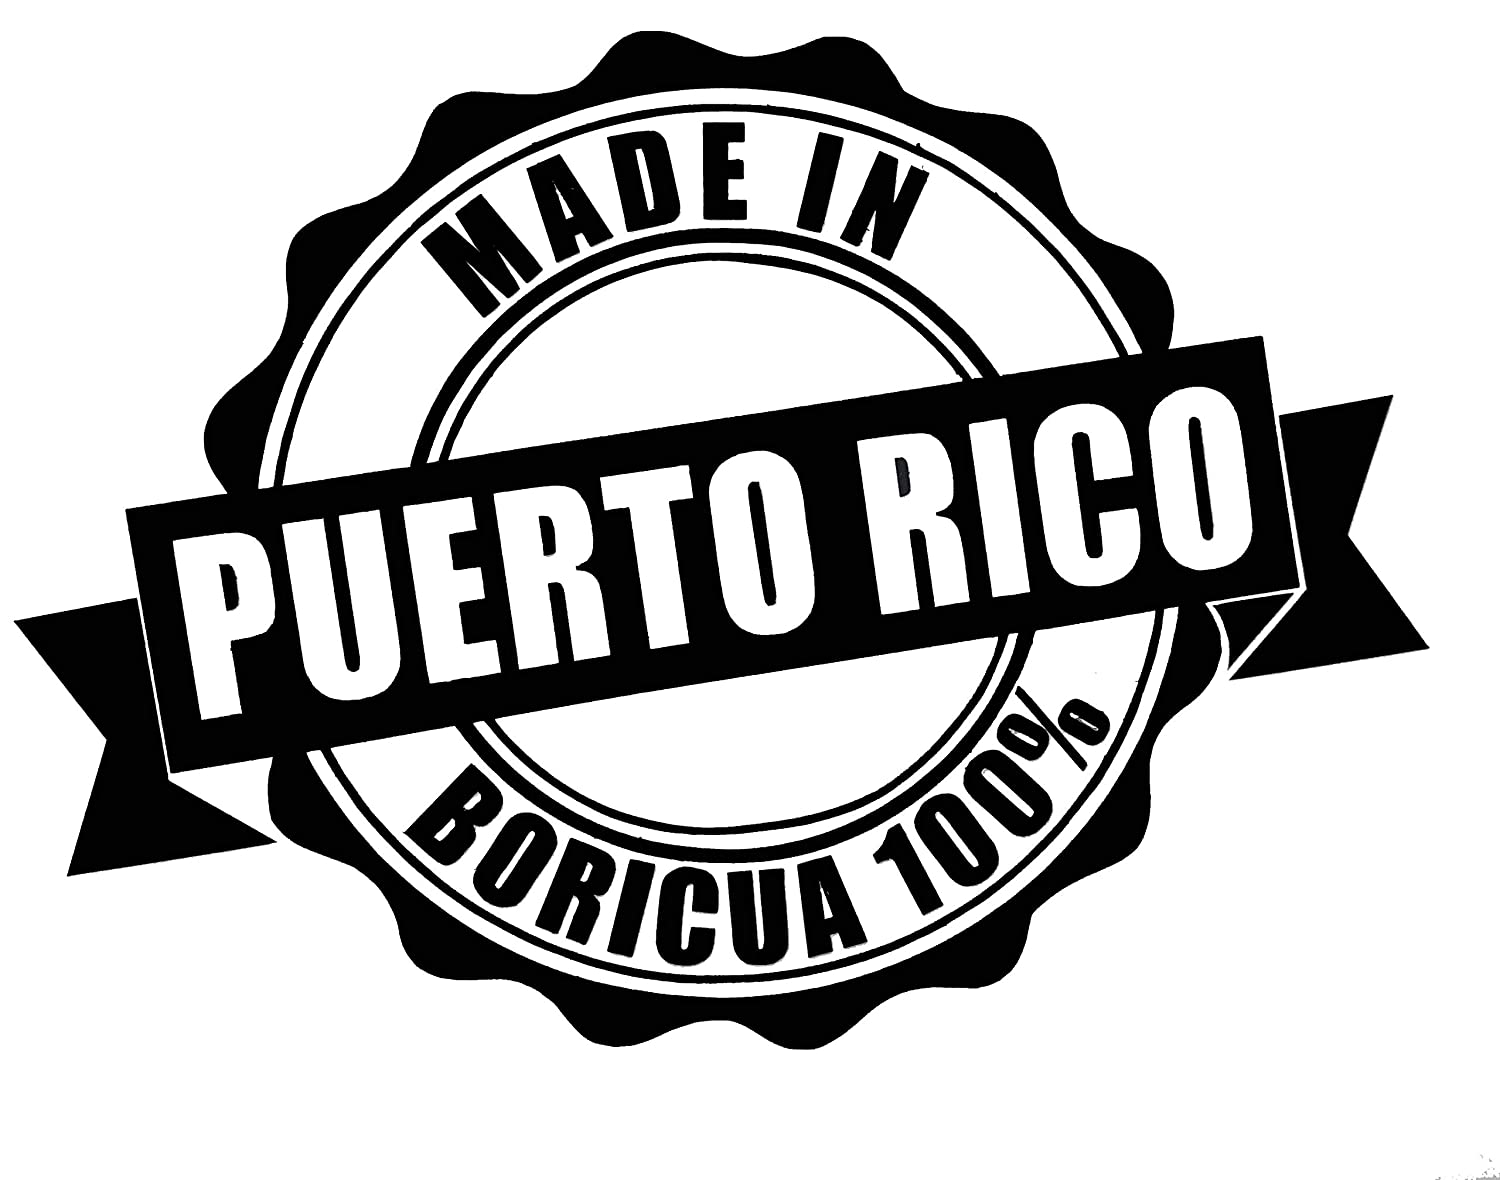 Amazon com custom made in puerto rico vinyl decal personalized puerto rican bumper sticker for laptops or car windows pick size and color handmade